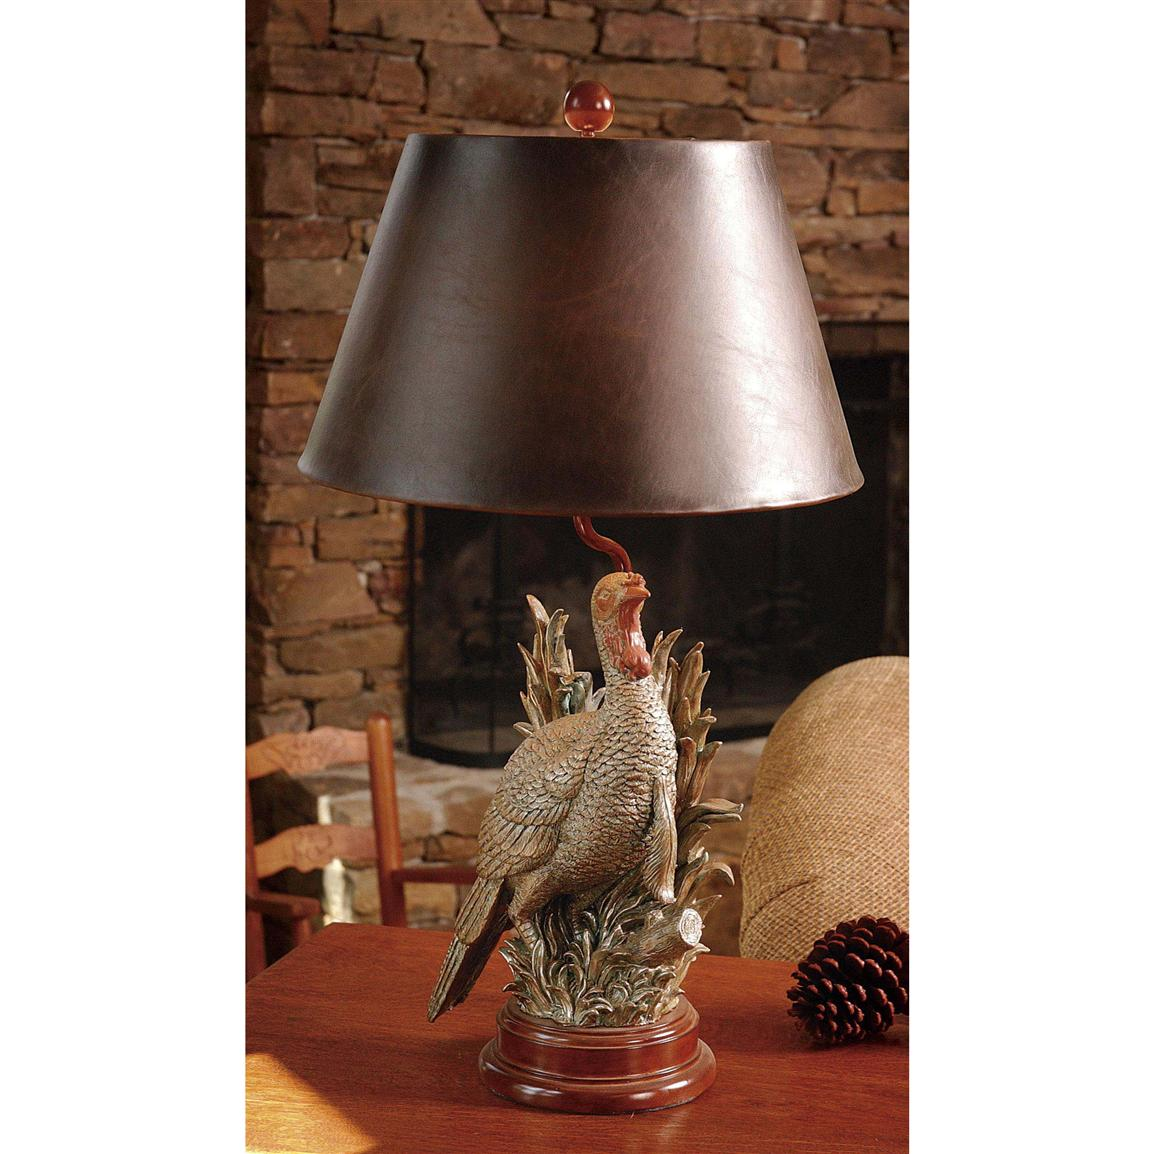 vintage verandah table lamps vintage verandah 174 turkey table lamp 142075 lighting at 6877